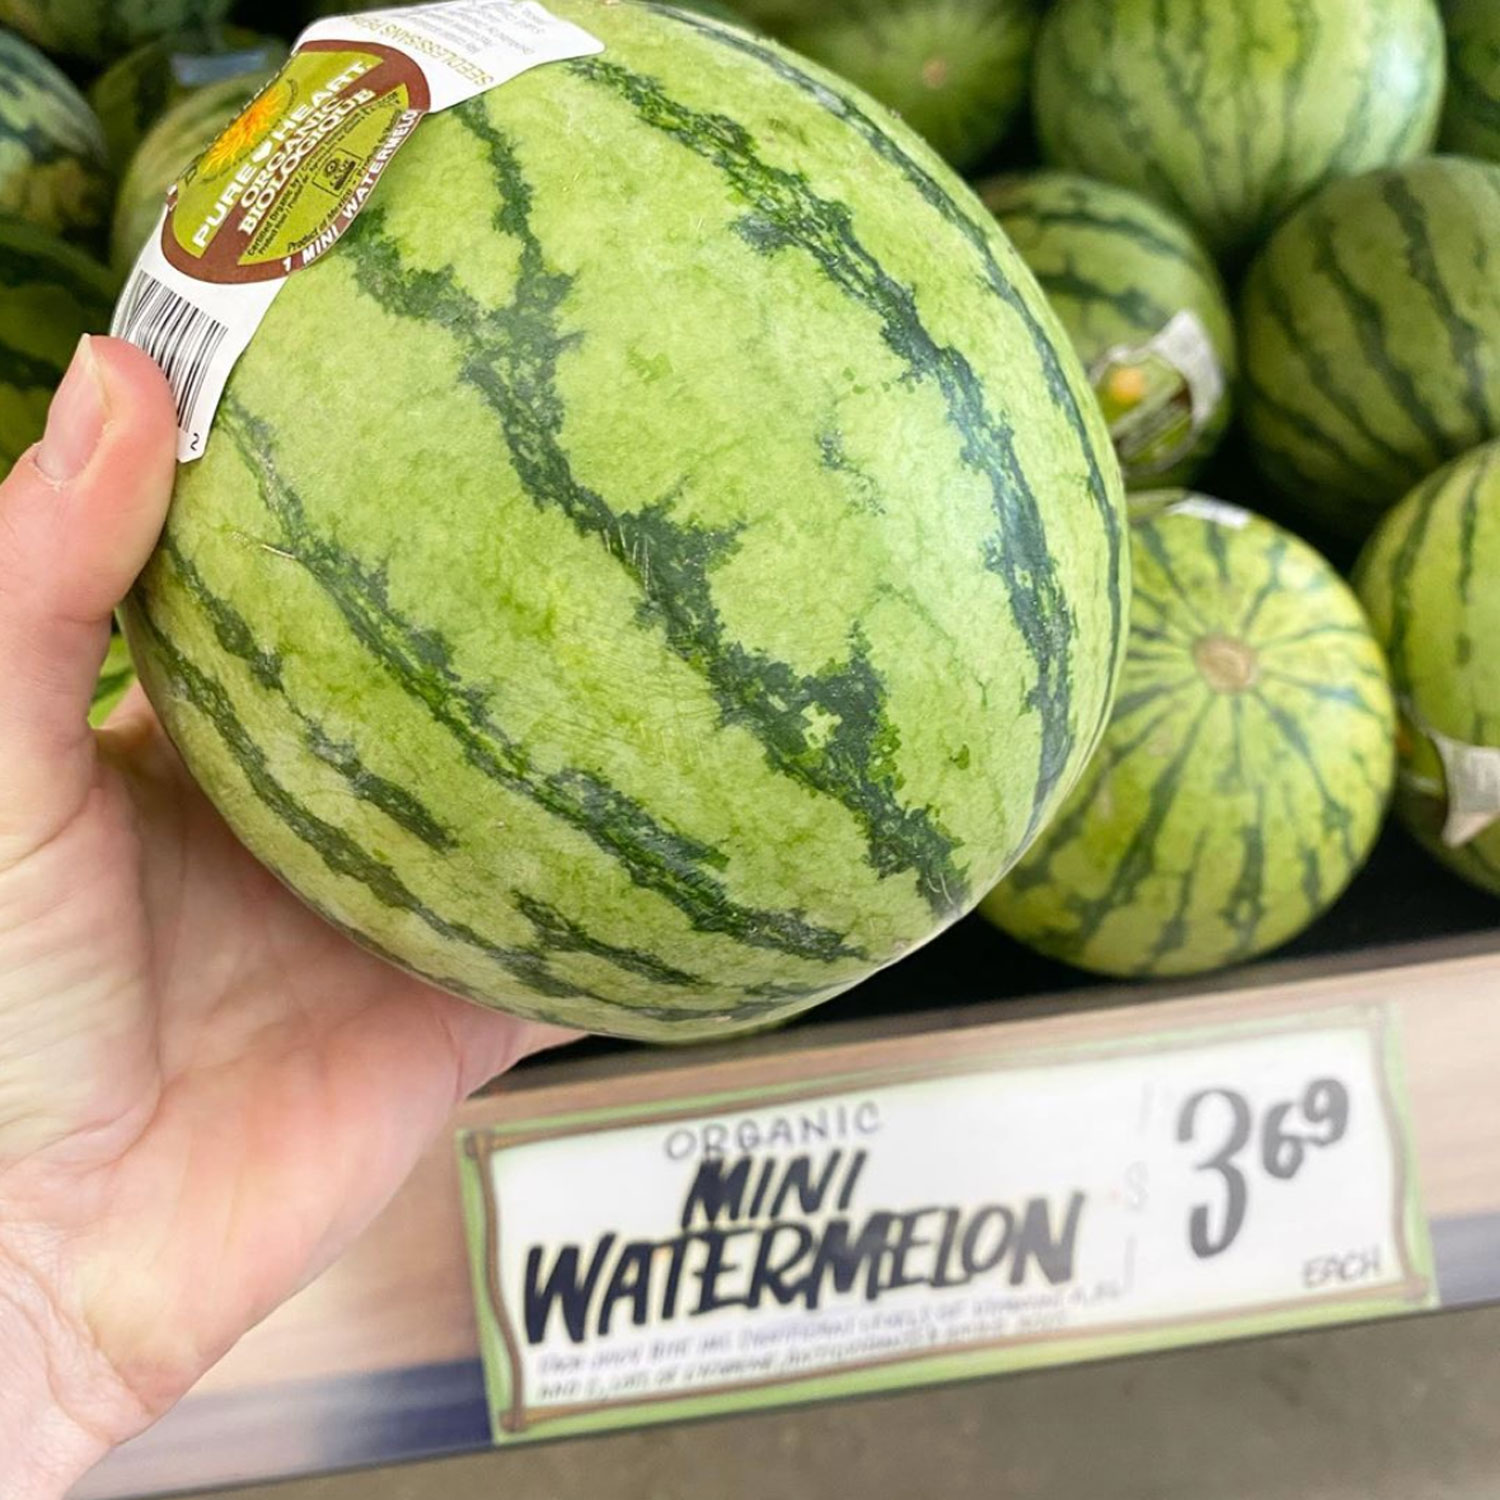 trader joe's mini watermelon